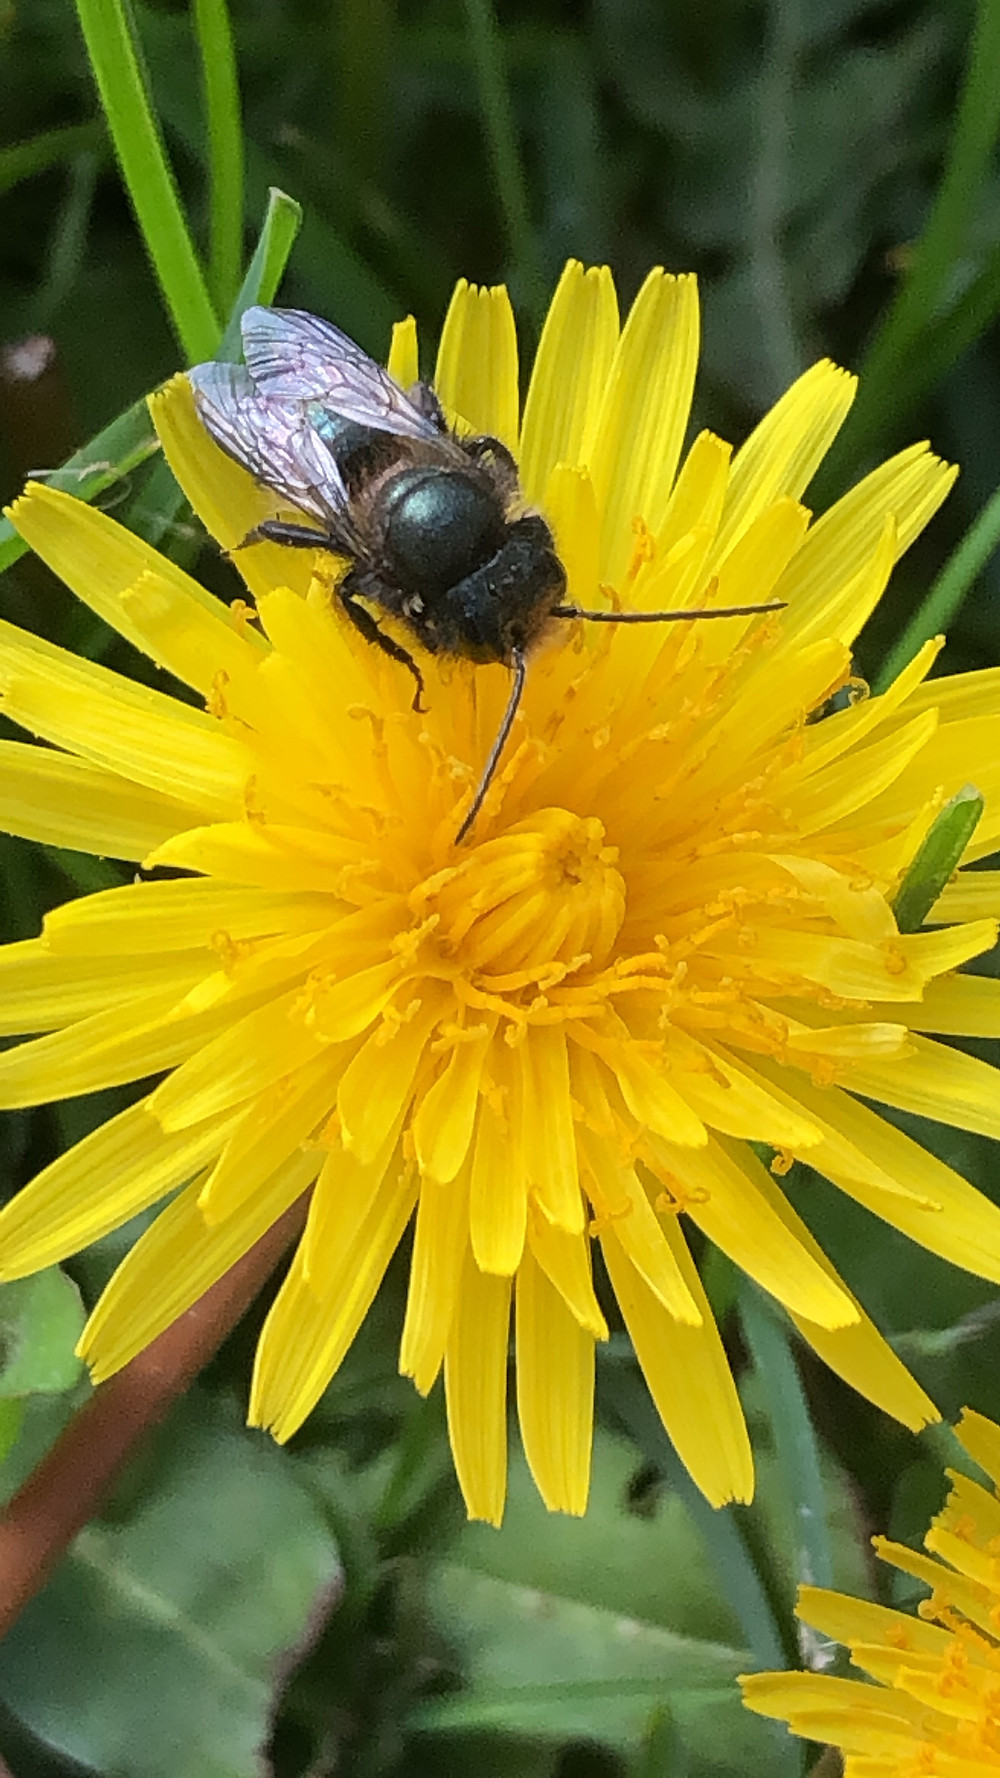 Mason bee early in spring on a dandelion. Close up detail of bee and flower.